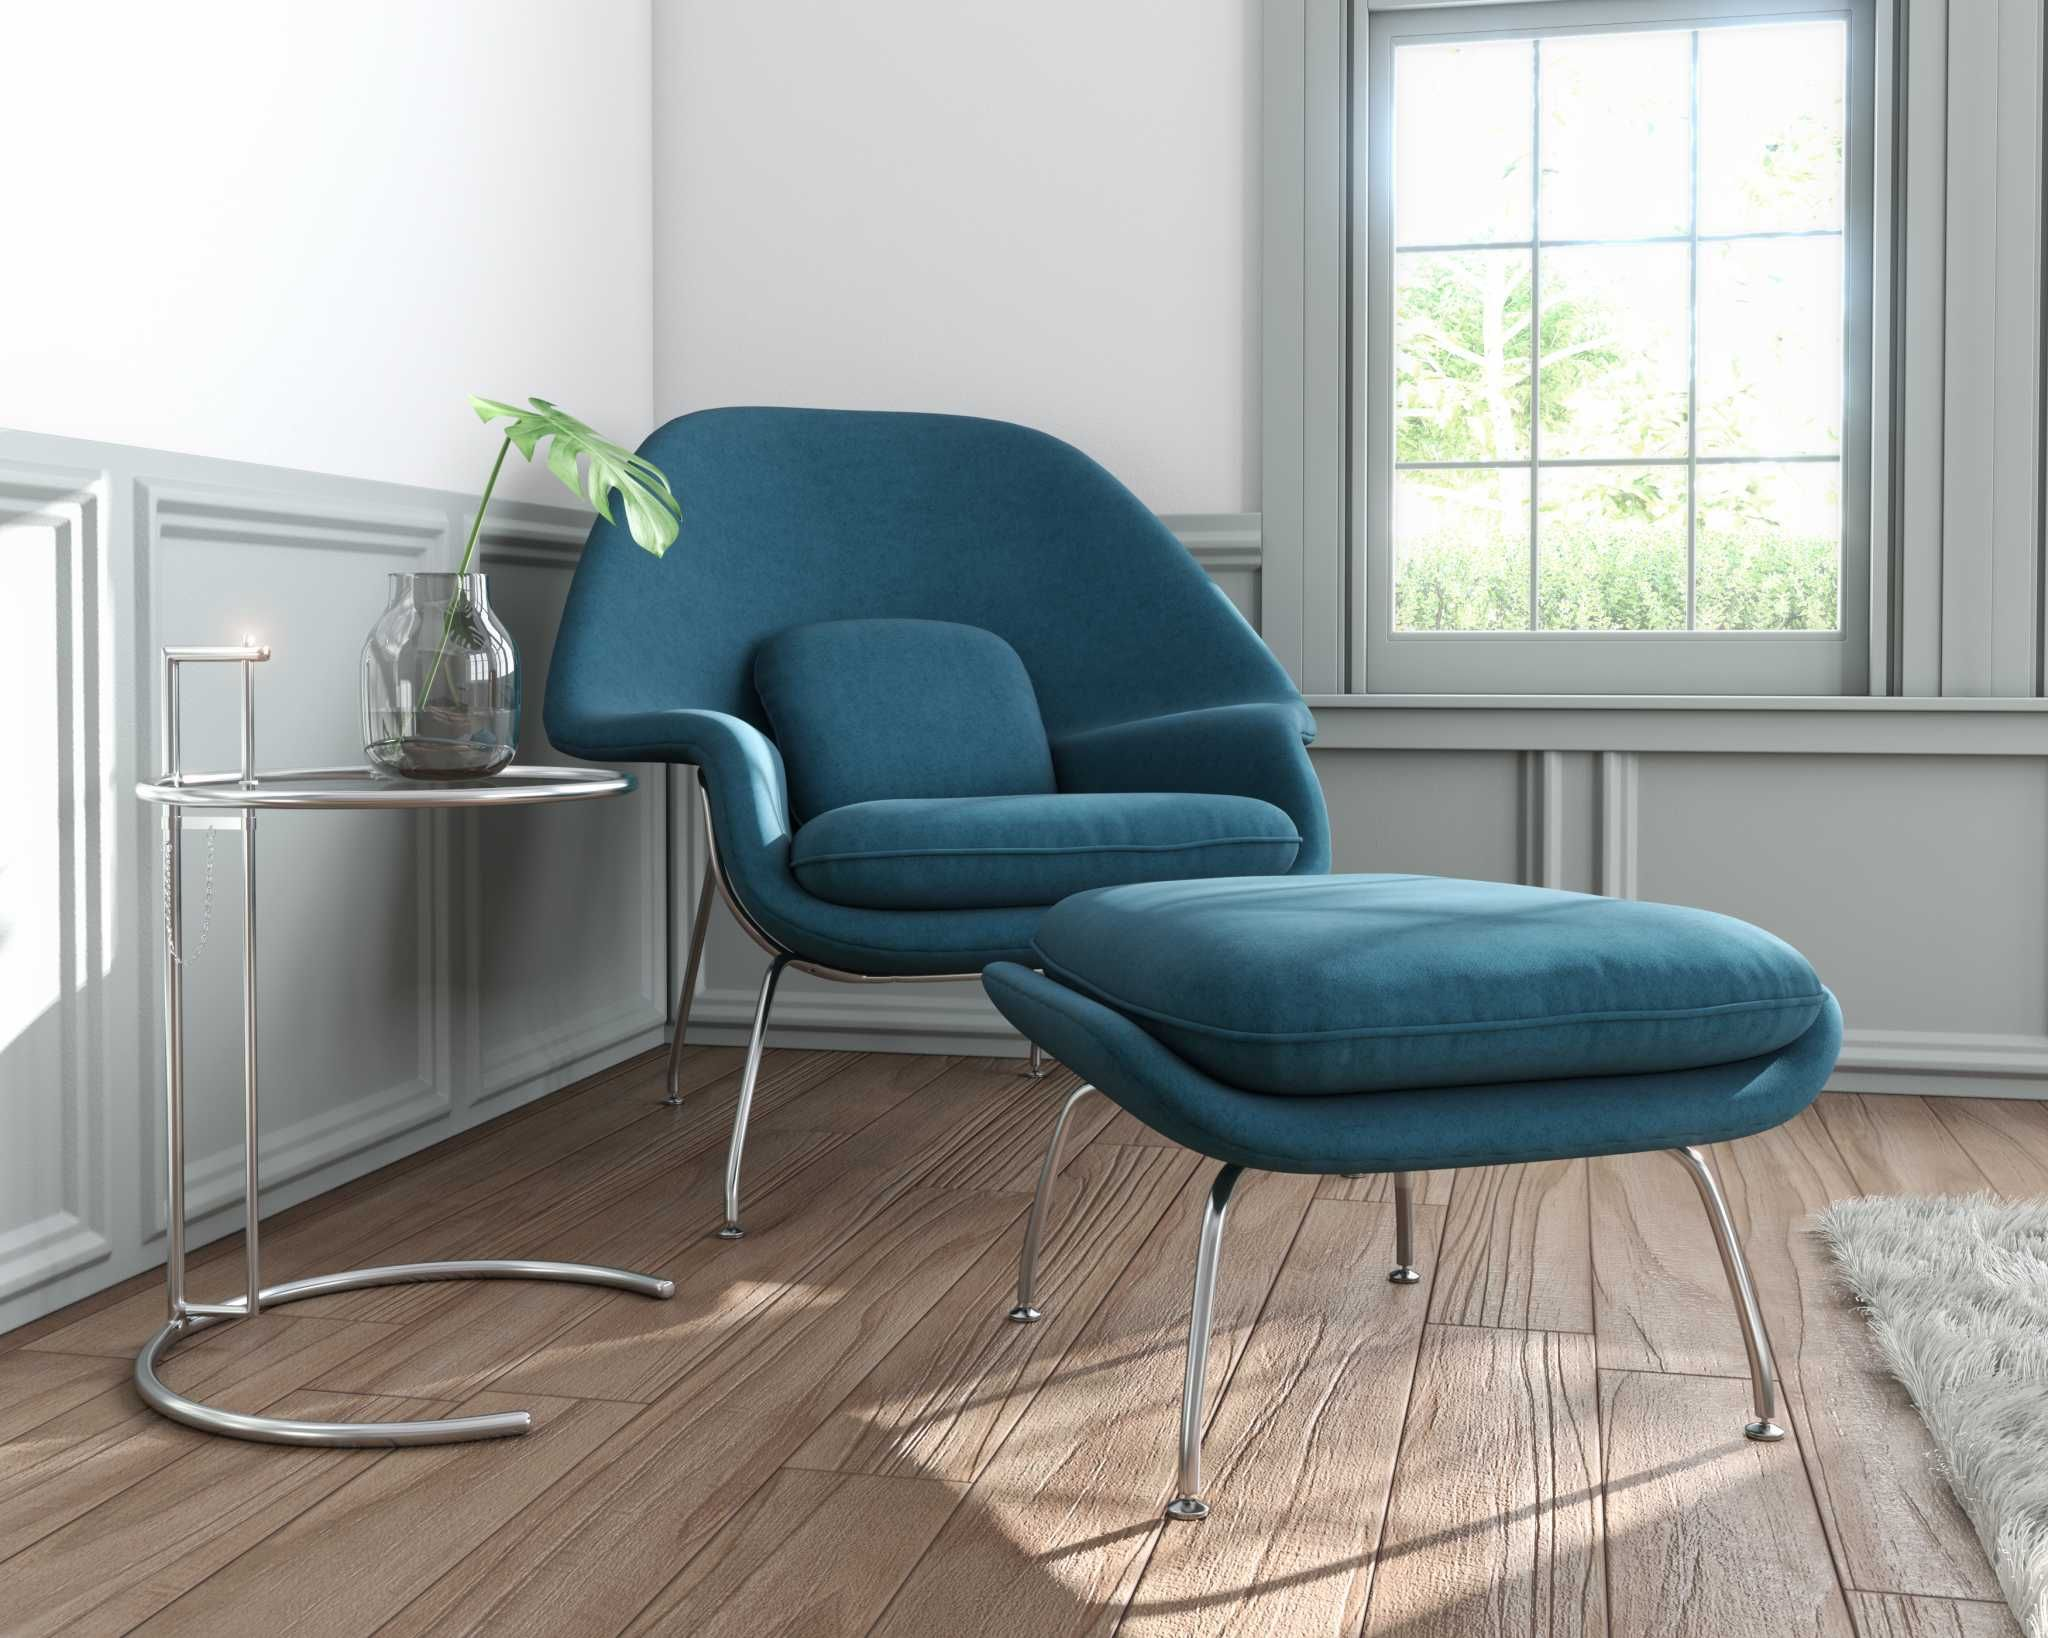 Womb Chair And Ottoman - Rove Concepts Rove Classics Mid Century